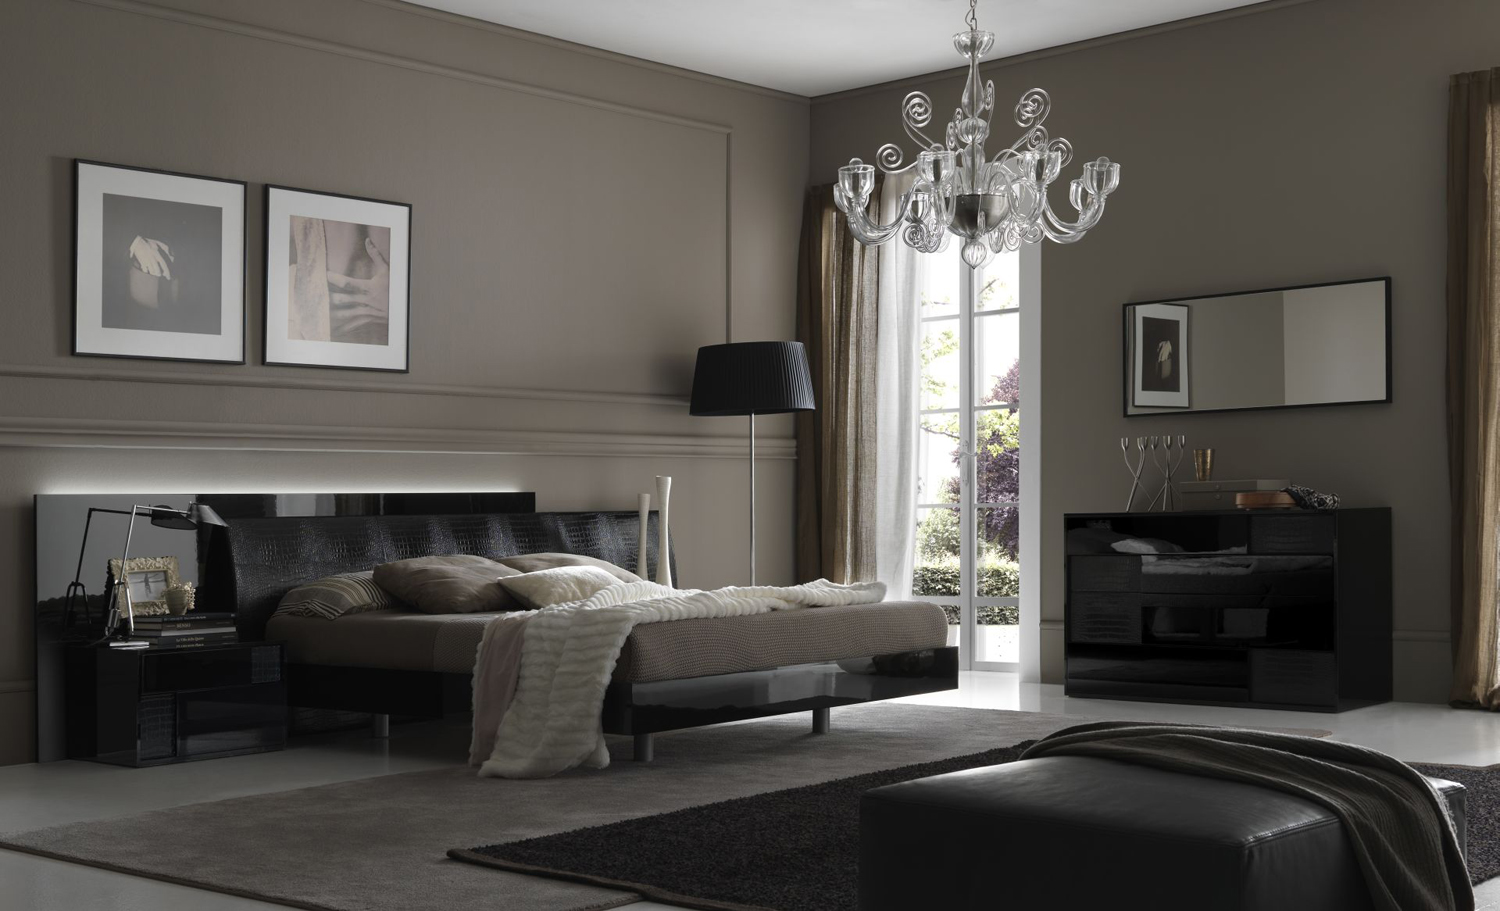 Amazing Grey Walls Bedroom Decorating Ideas 1500 x 911 · 537 kB · jpeg